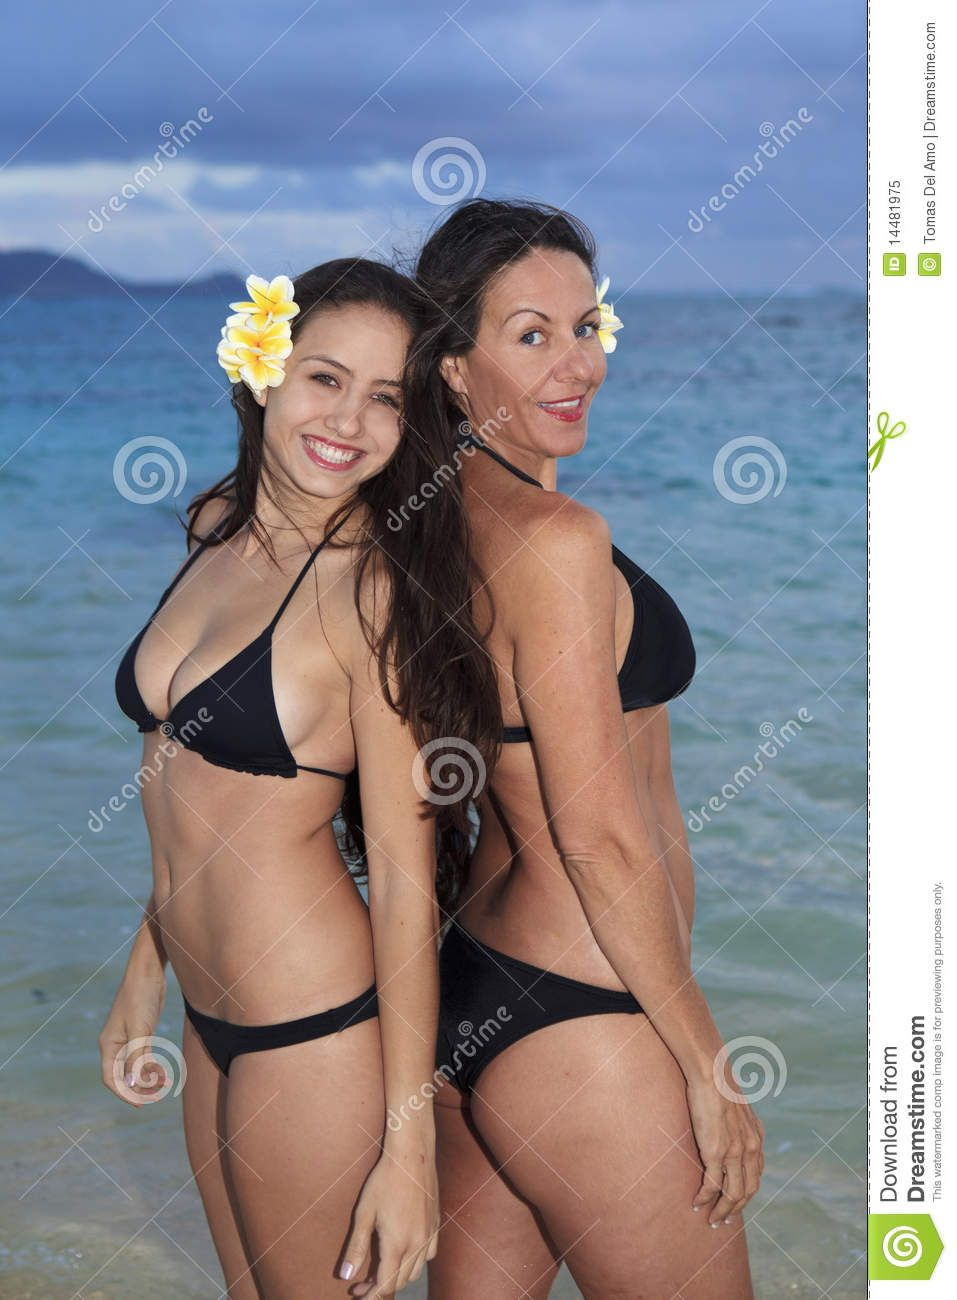 Only bikini women photographs royalty free